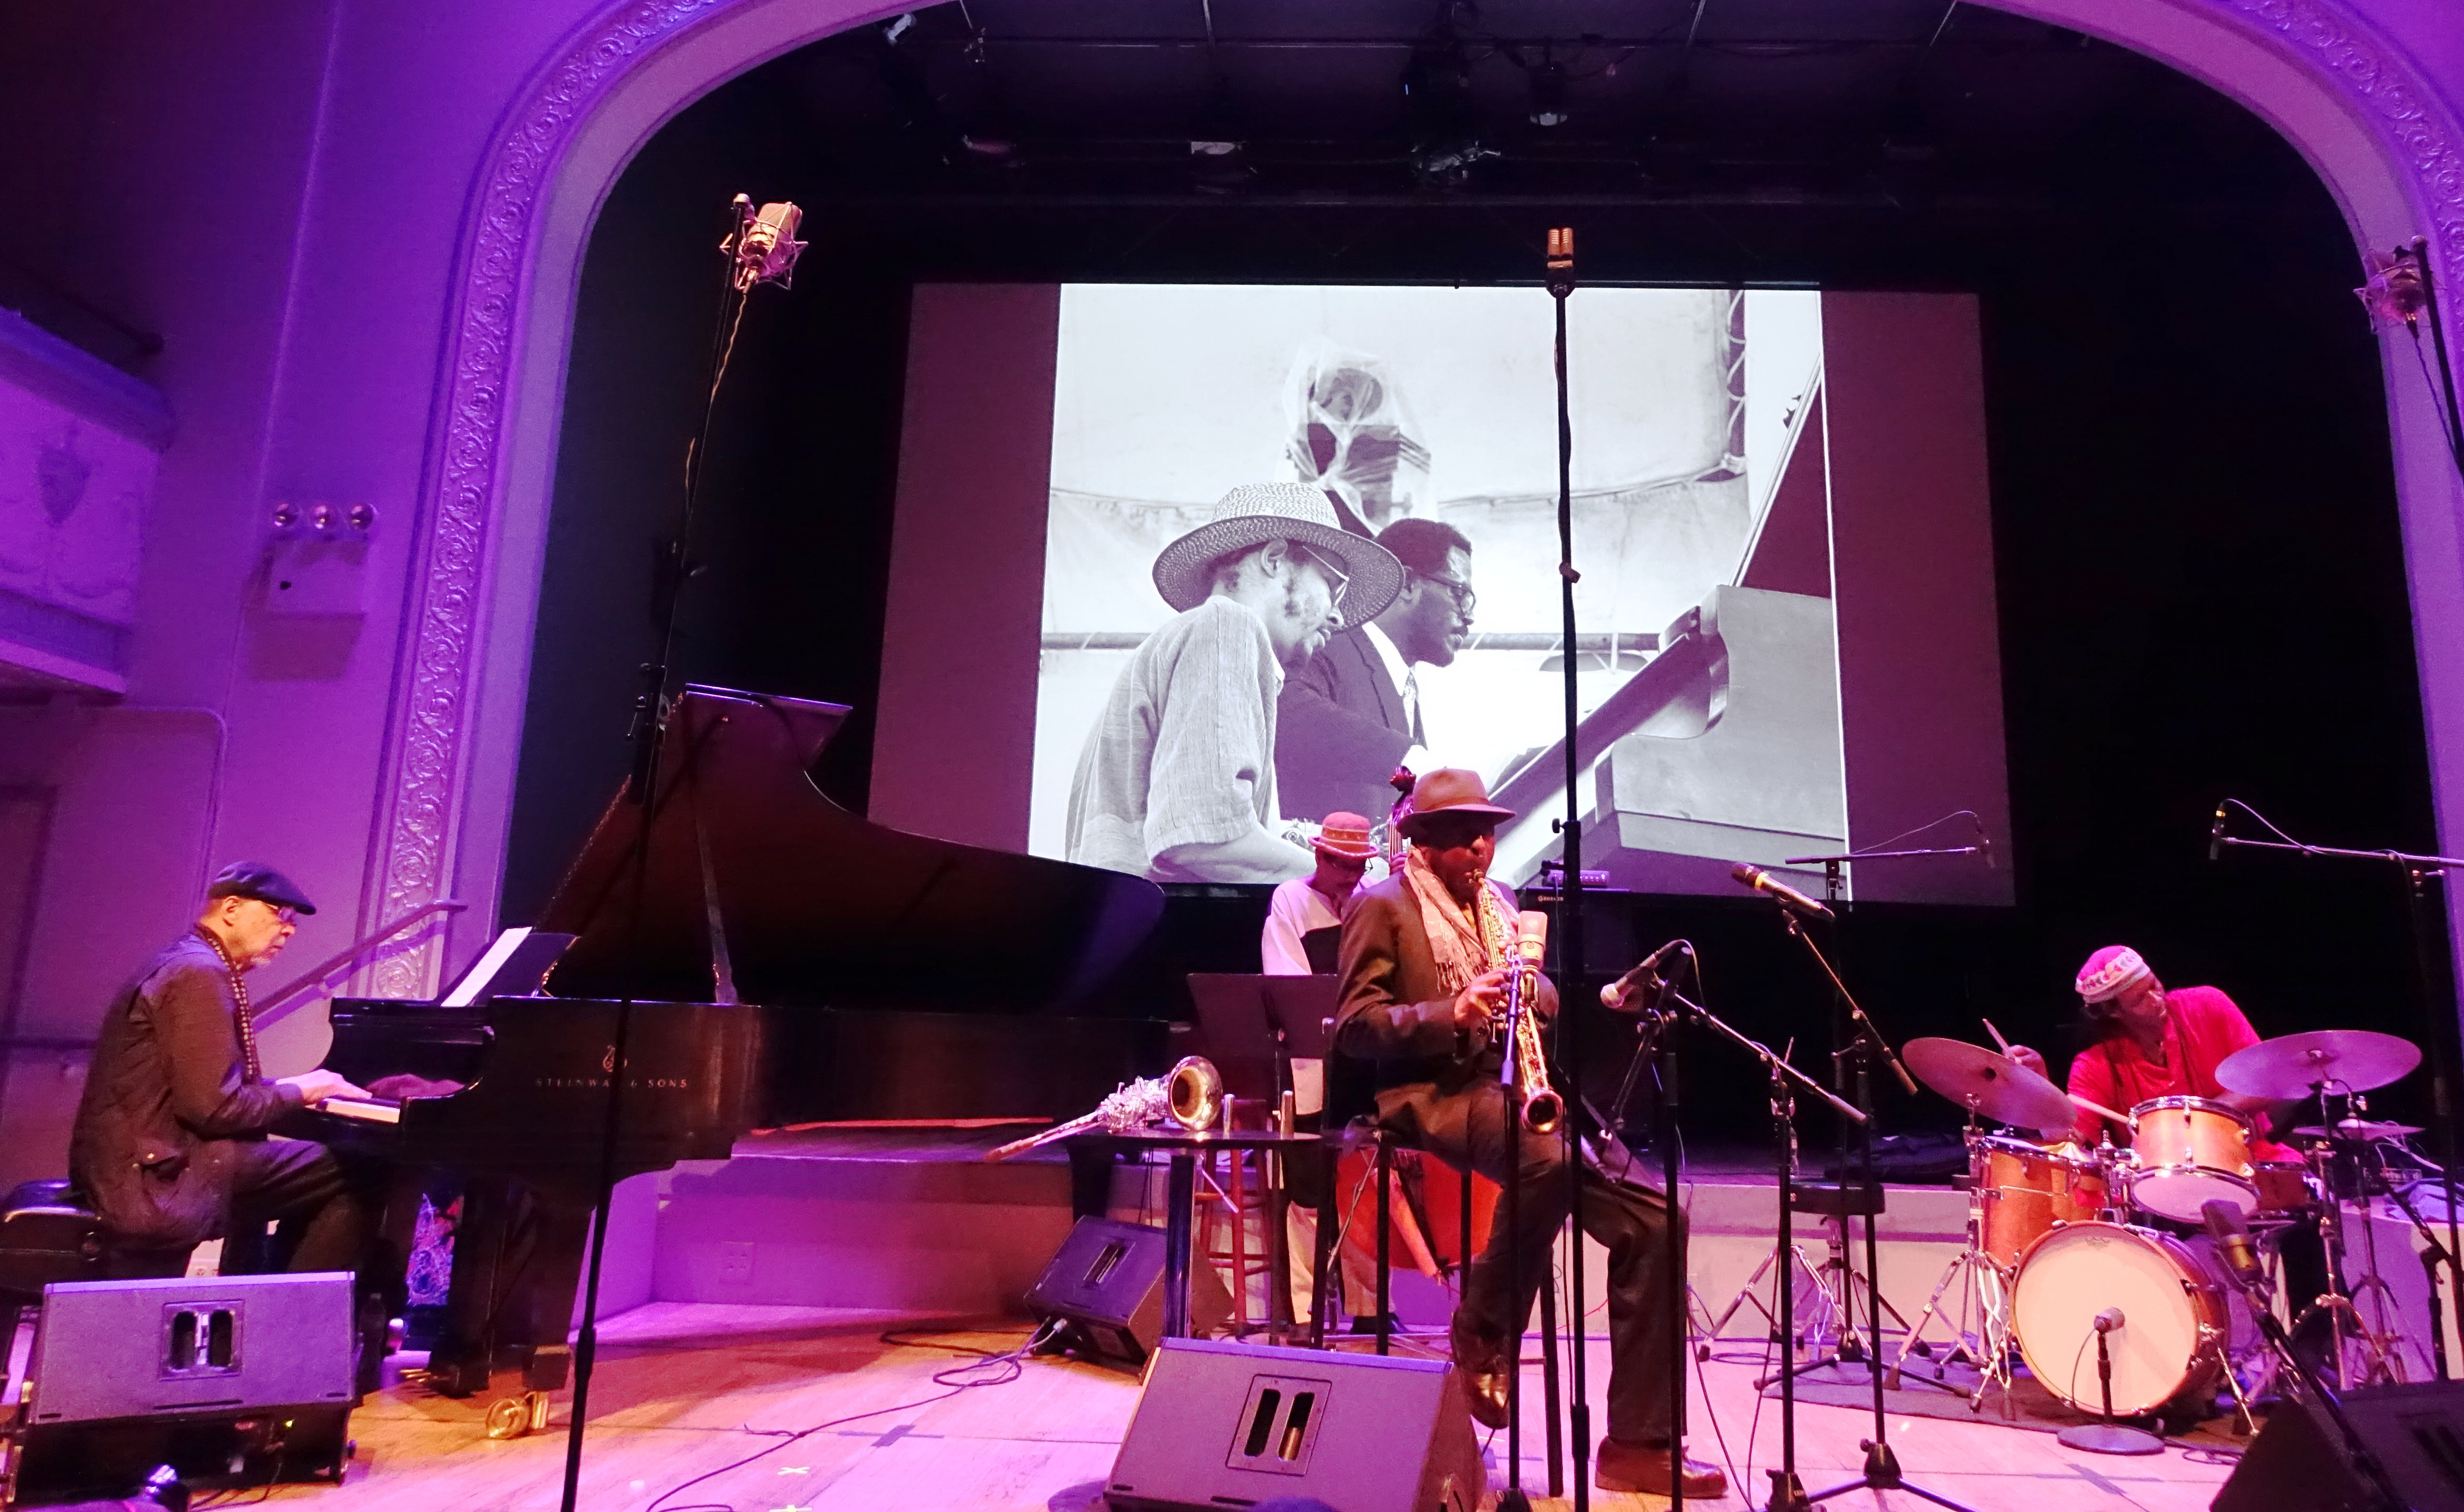 Archie Shepp Quartet at Roulette, Brooklyn in May 2018